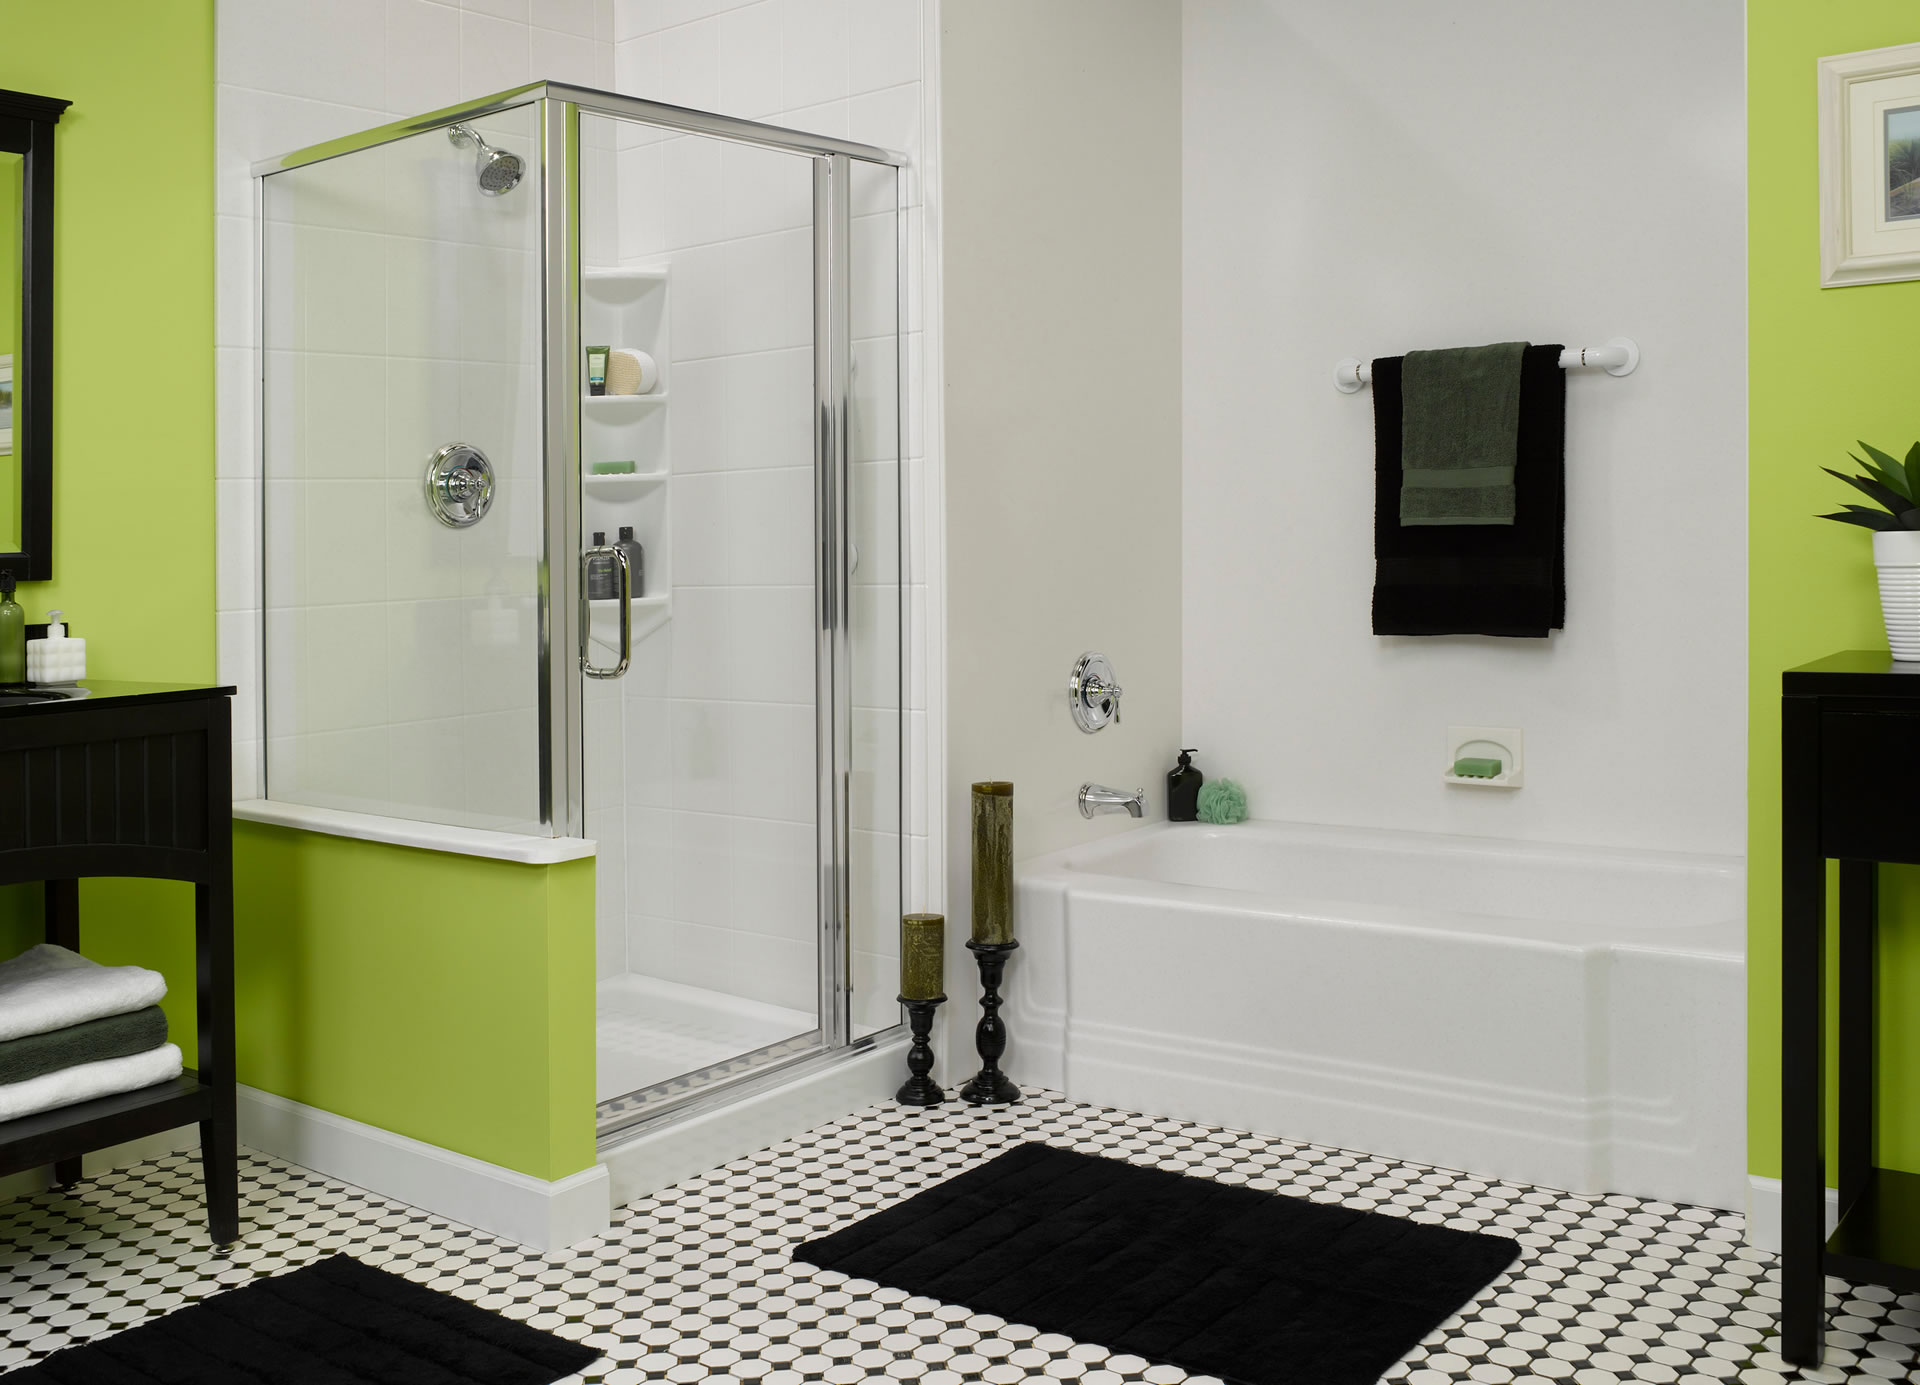 Black, white, and green bathroom design - Interior Design Ideas